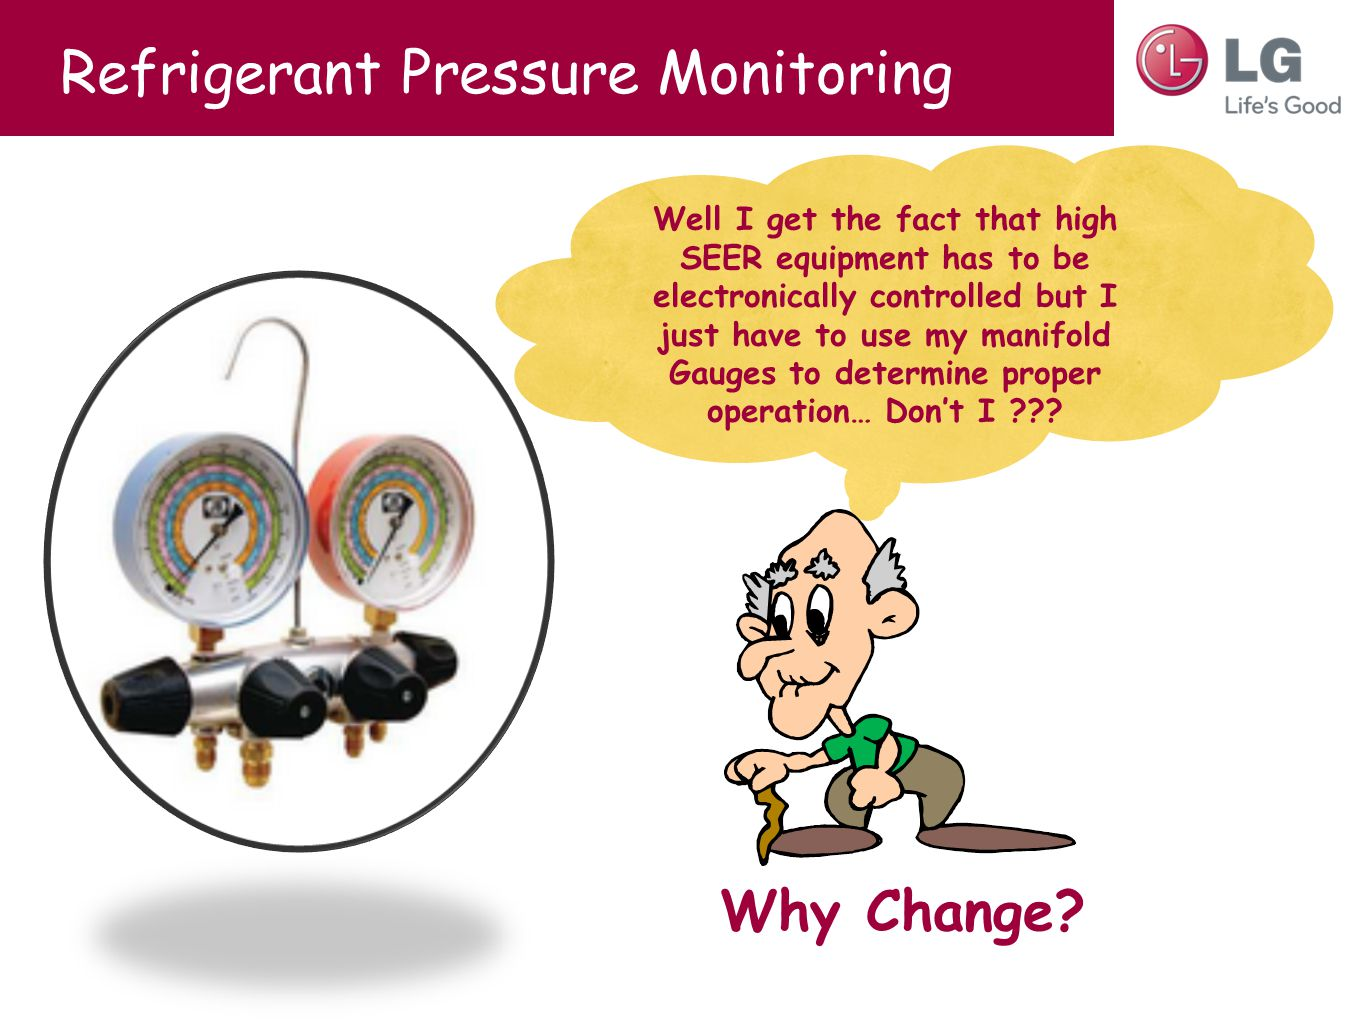 Refrigerant Pressure Monitoring Well I get the fact that high SEER equipment has to be electronically controlled but I just have to use my manifold Ga